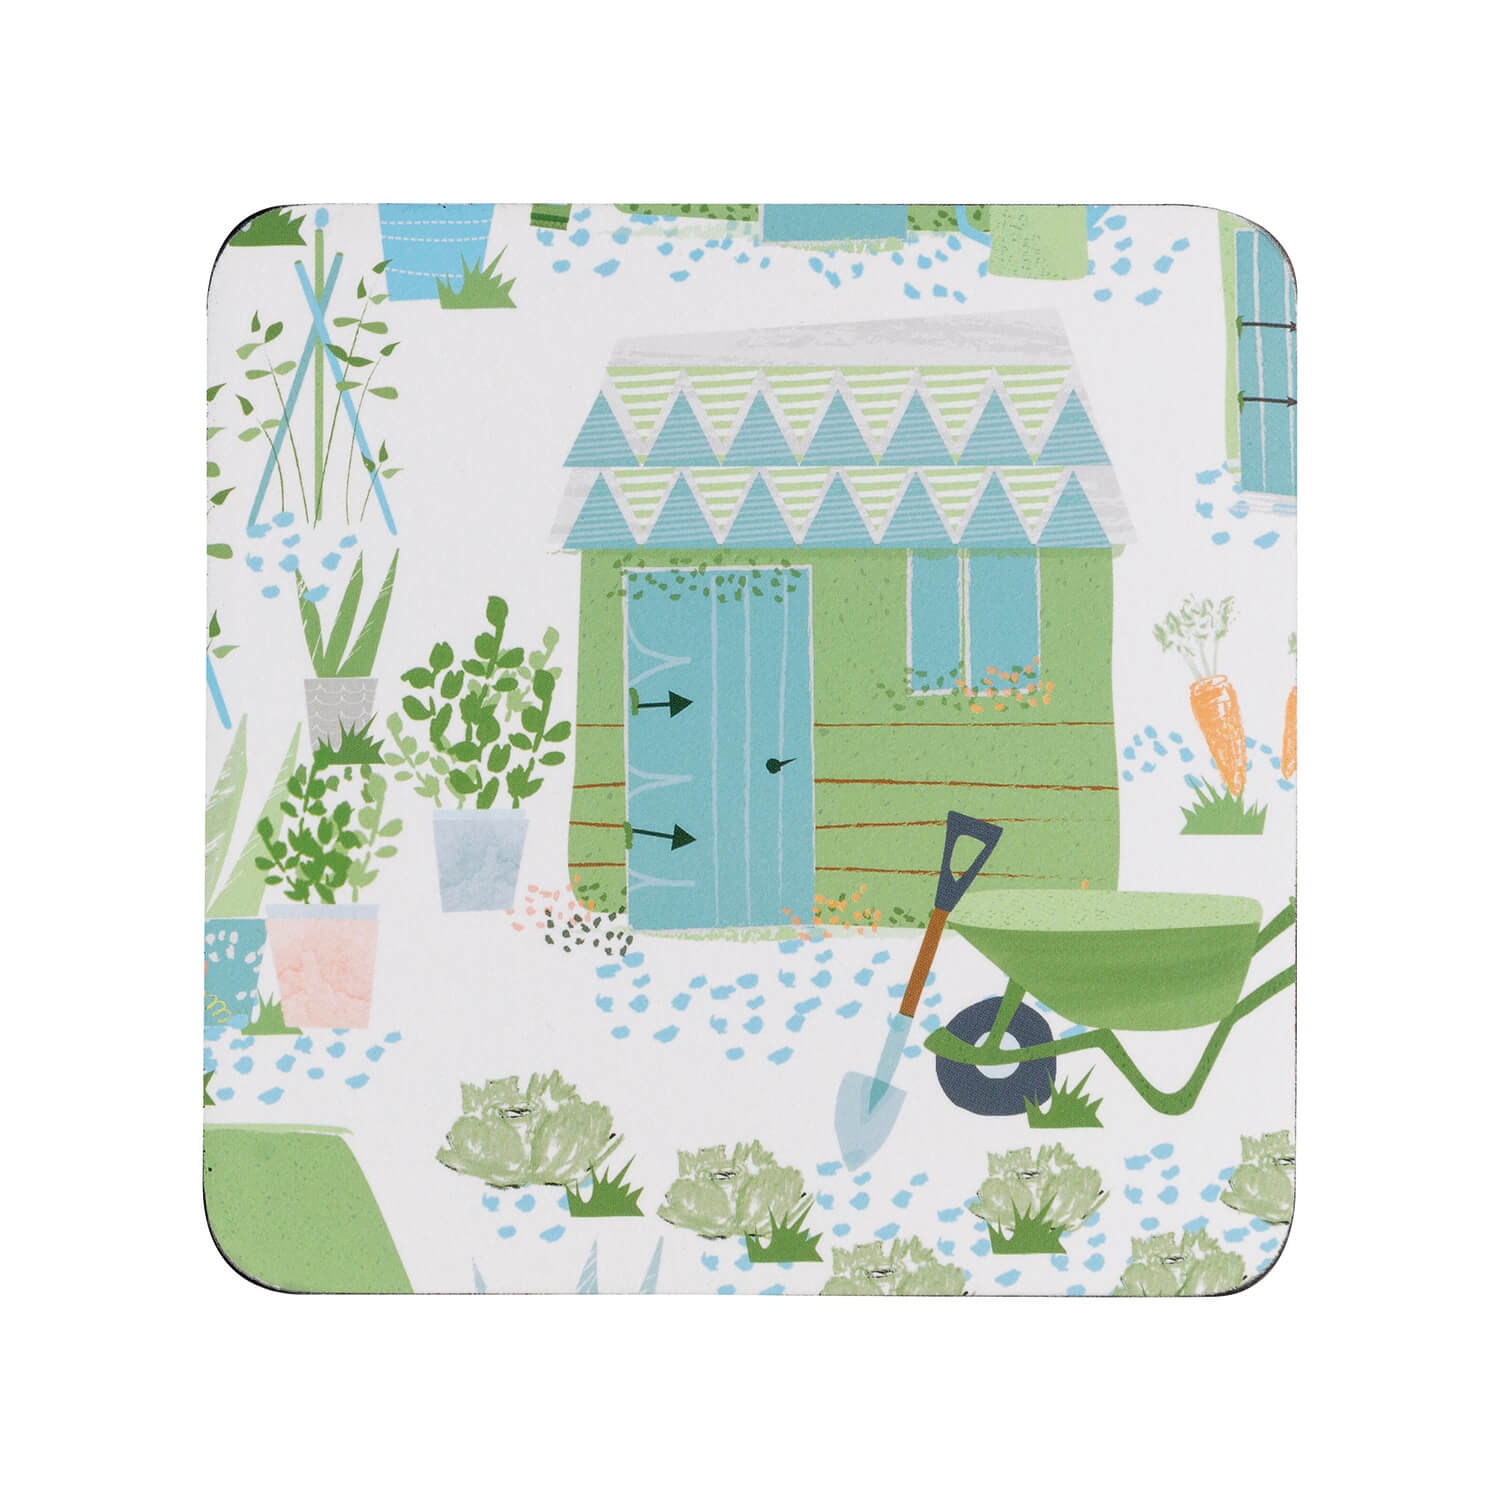 Image of Denby Allotment Coasters, Green